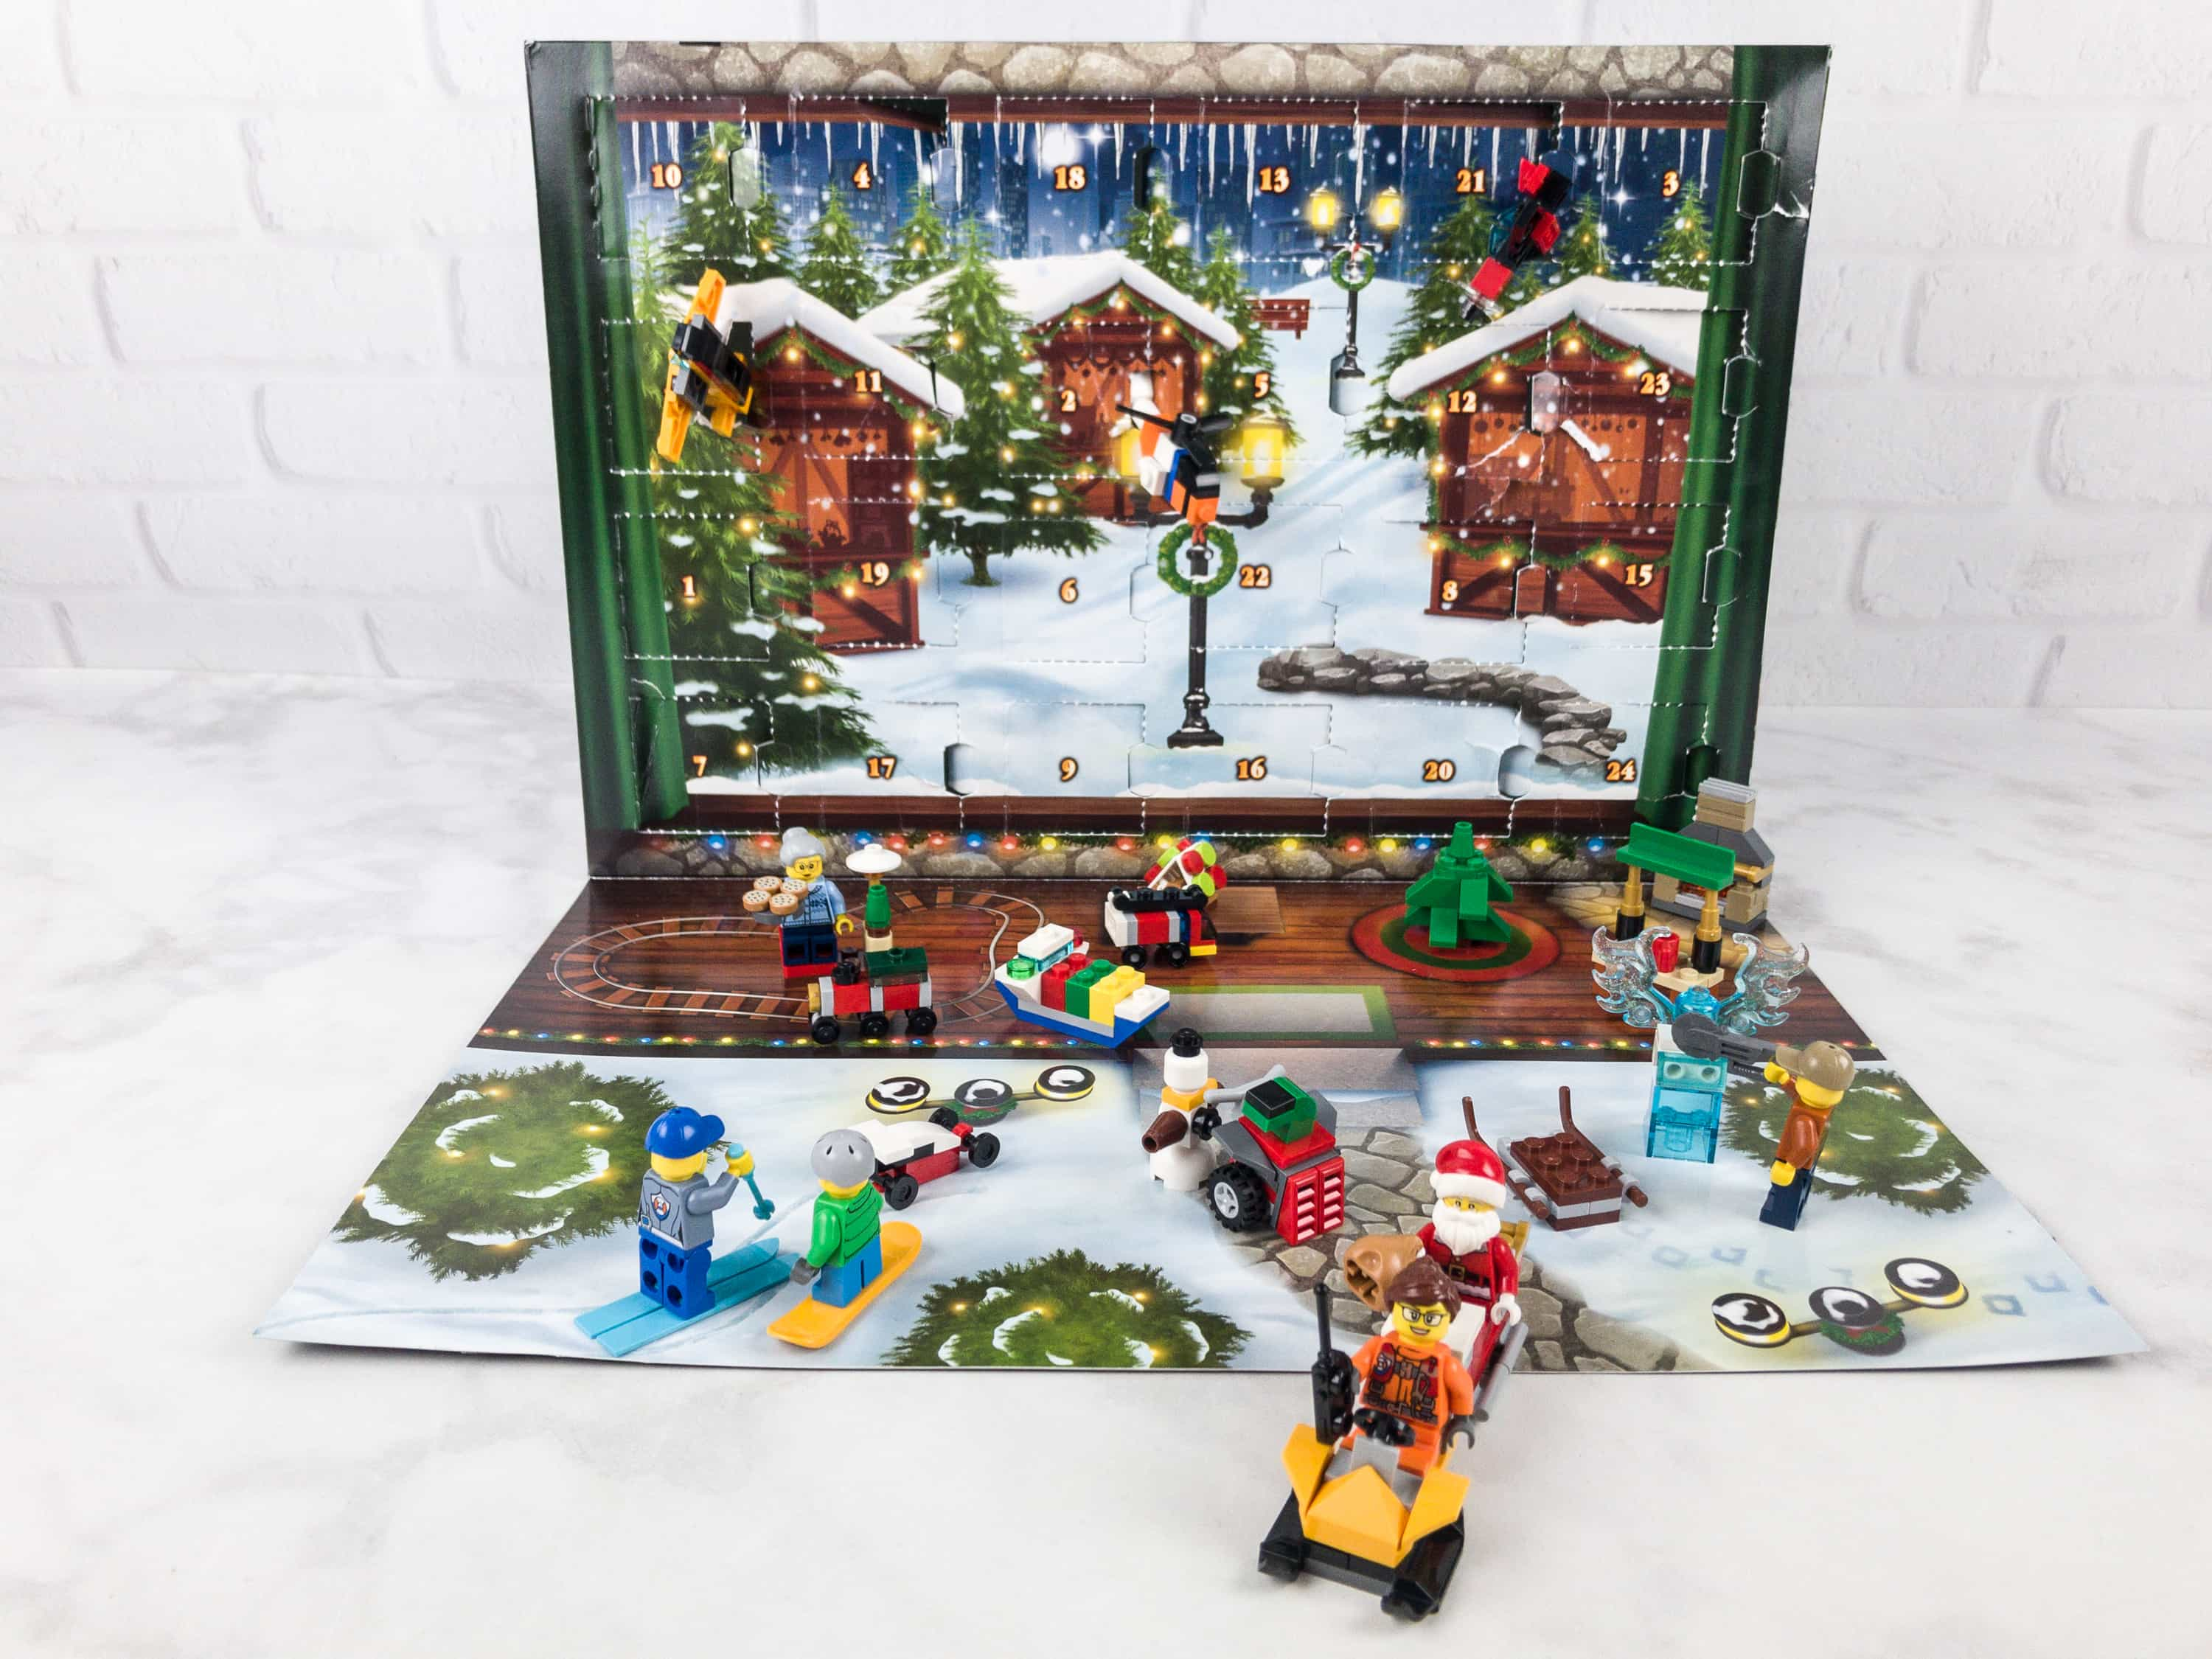 Lego City Advent Calendar 2017 Mini Review   hello subscription